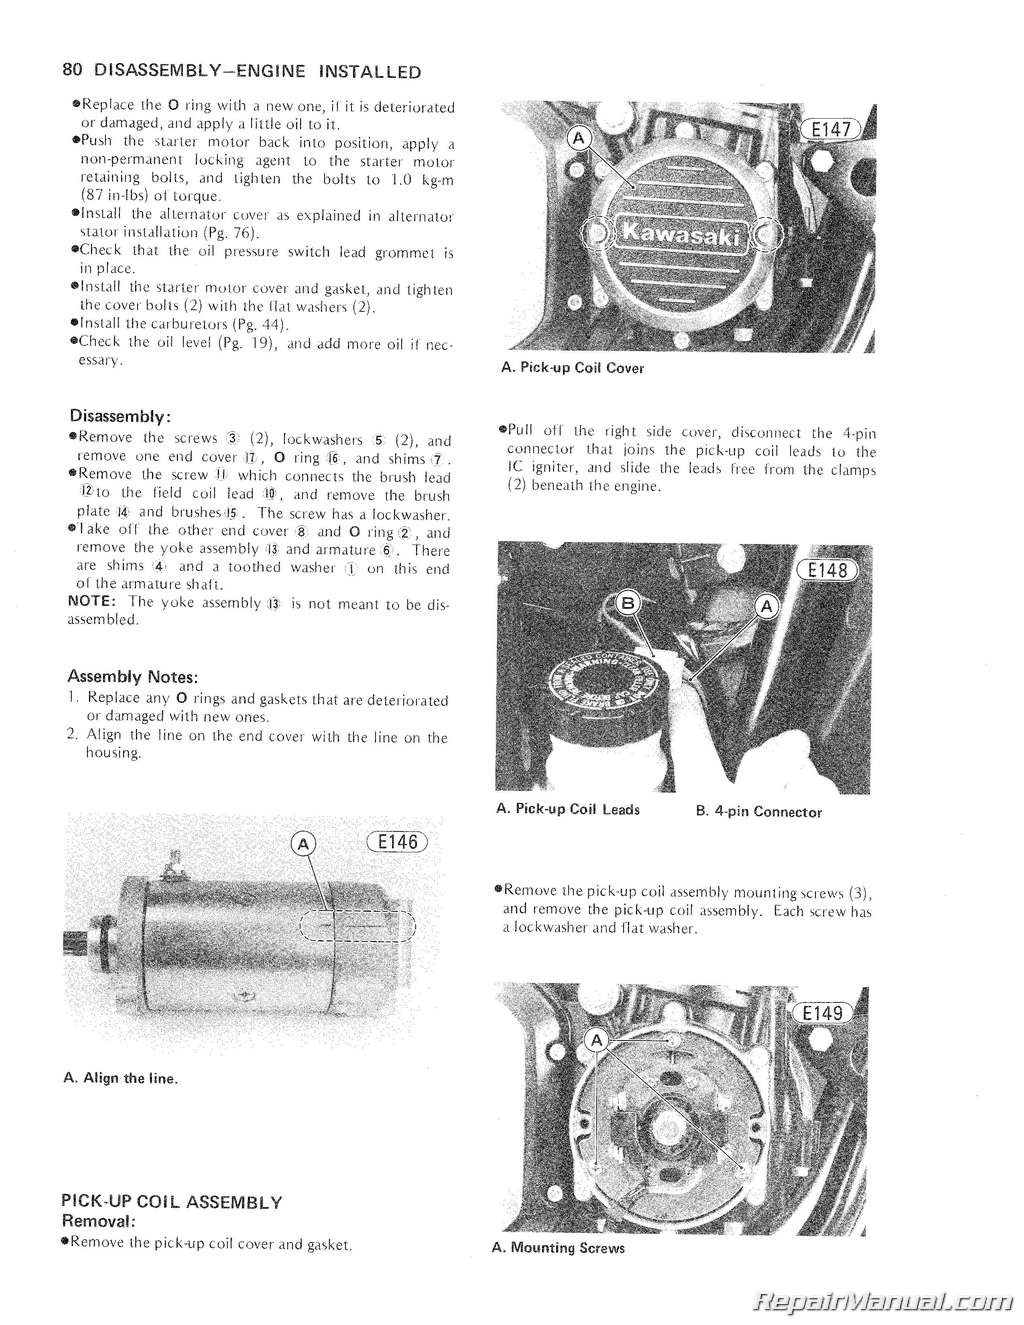 1979-1980 Kawasaki KZ1000E Motorcycle Service Repair Manual